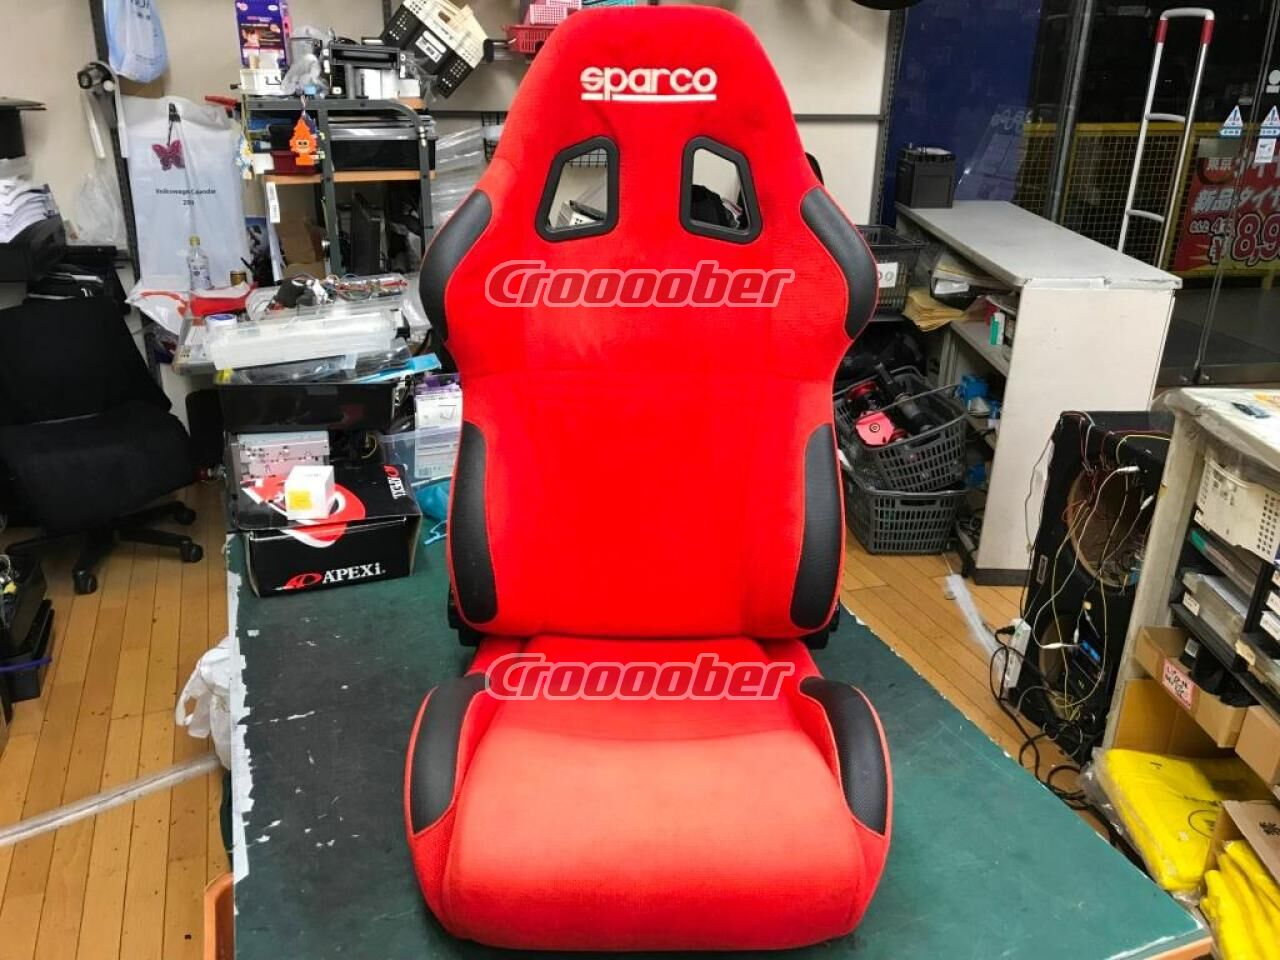 Sparco Reclining Seat Reclining Seats Others Croooober